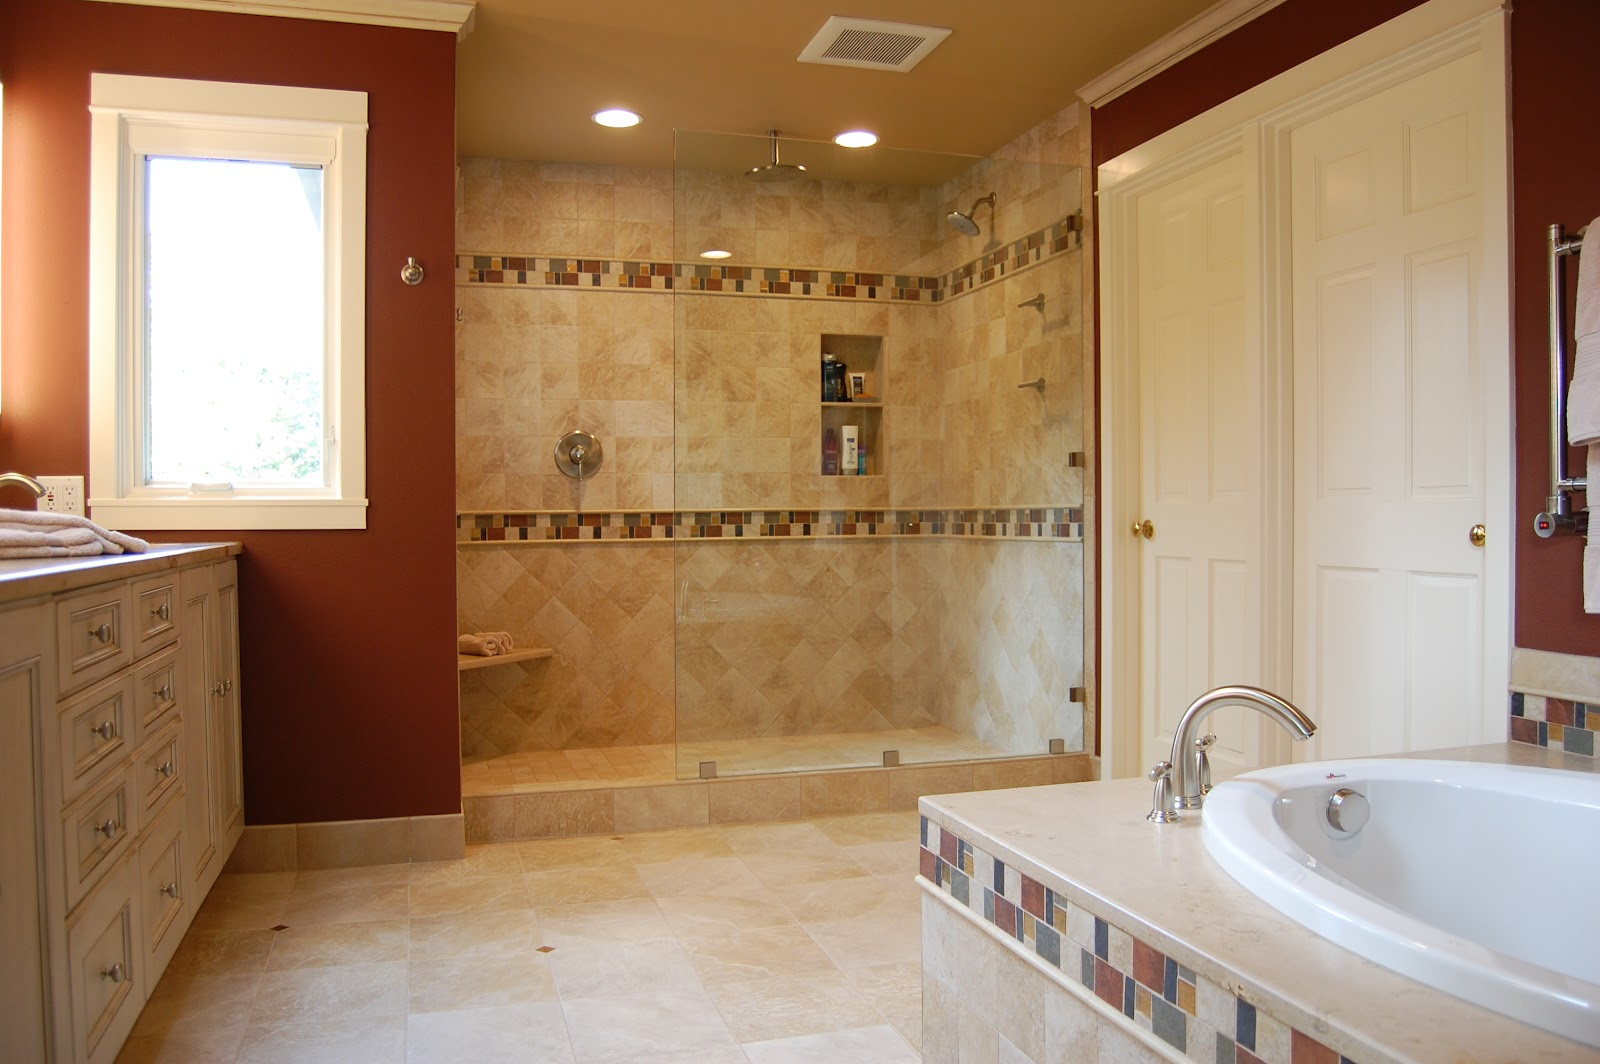 Bathroom Remodel Ideas WIth Cool Wall Color White Cabinet And Big Shower